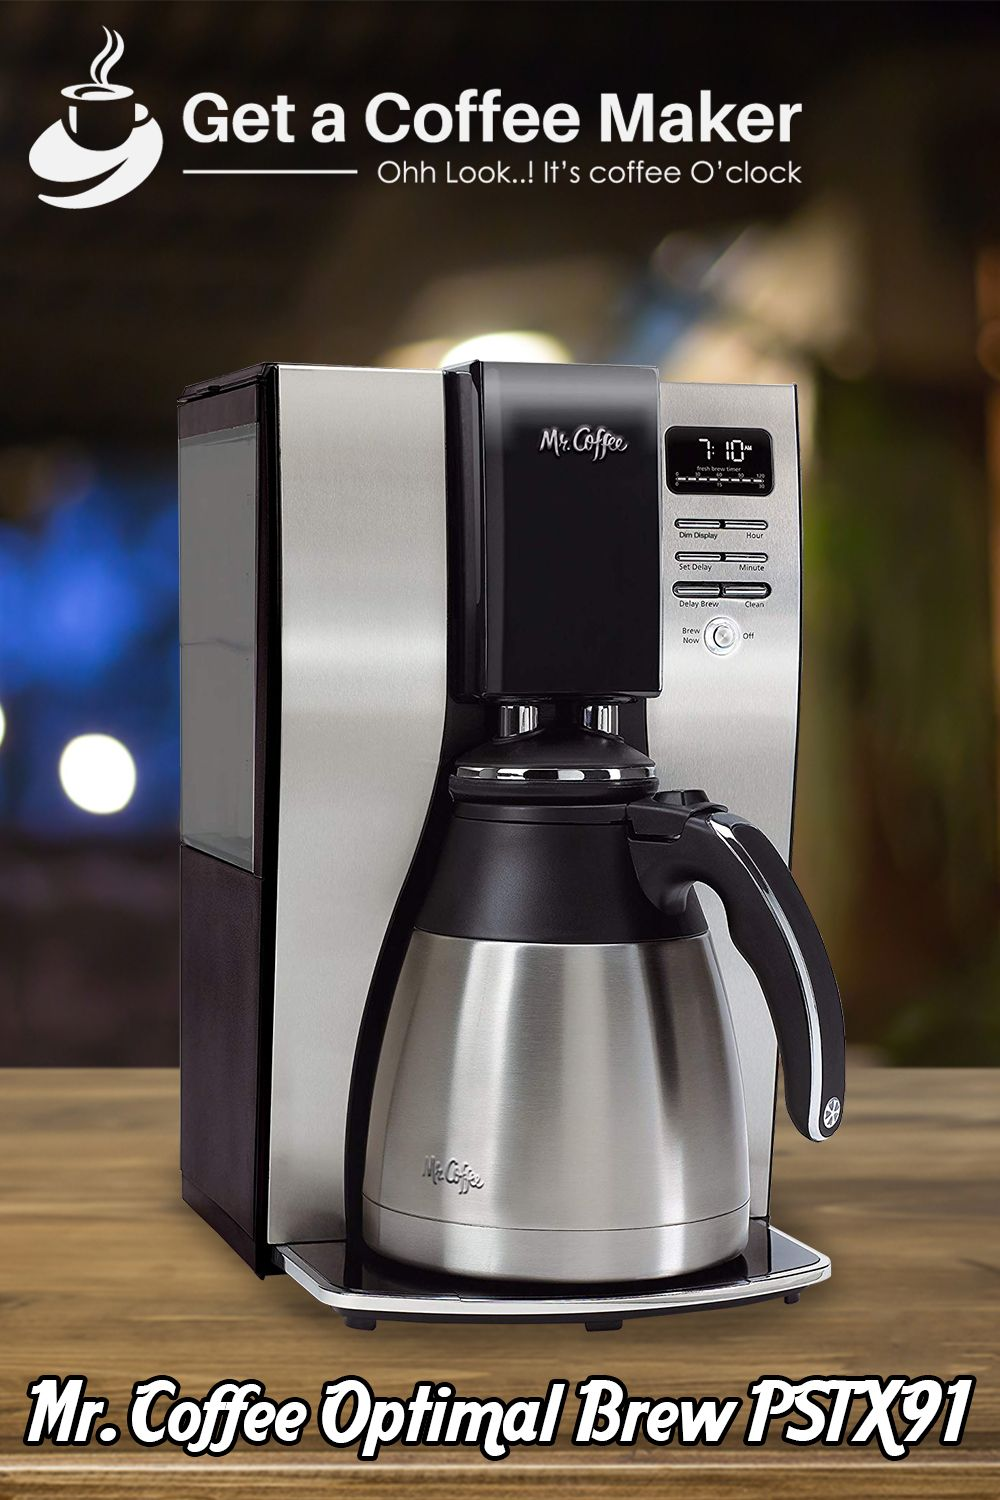 Top 10 Drip Coffee Makers (June 2020) Reviews & Buyers